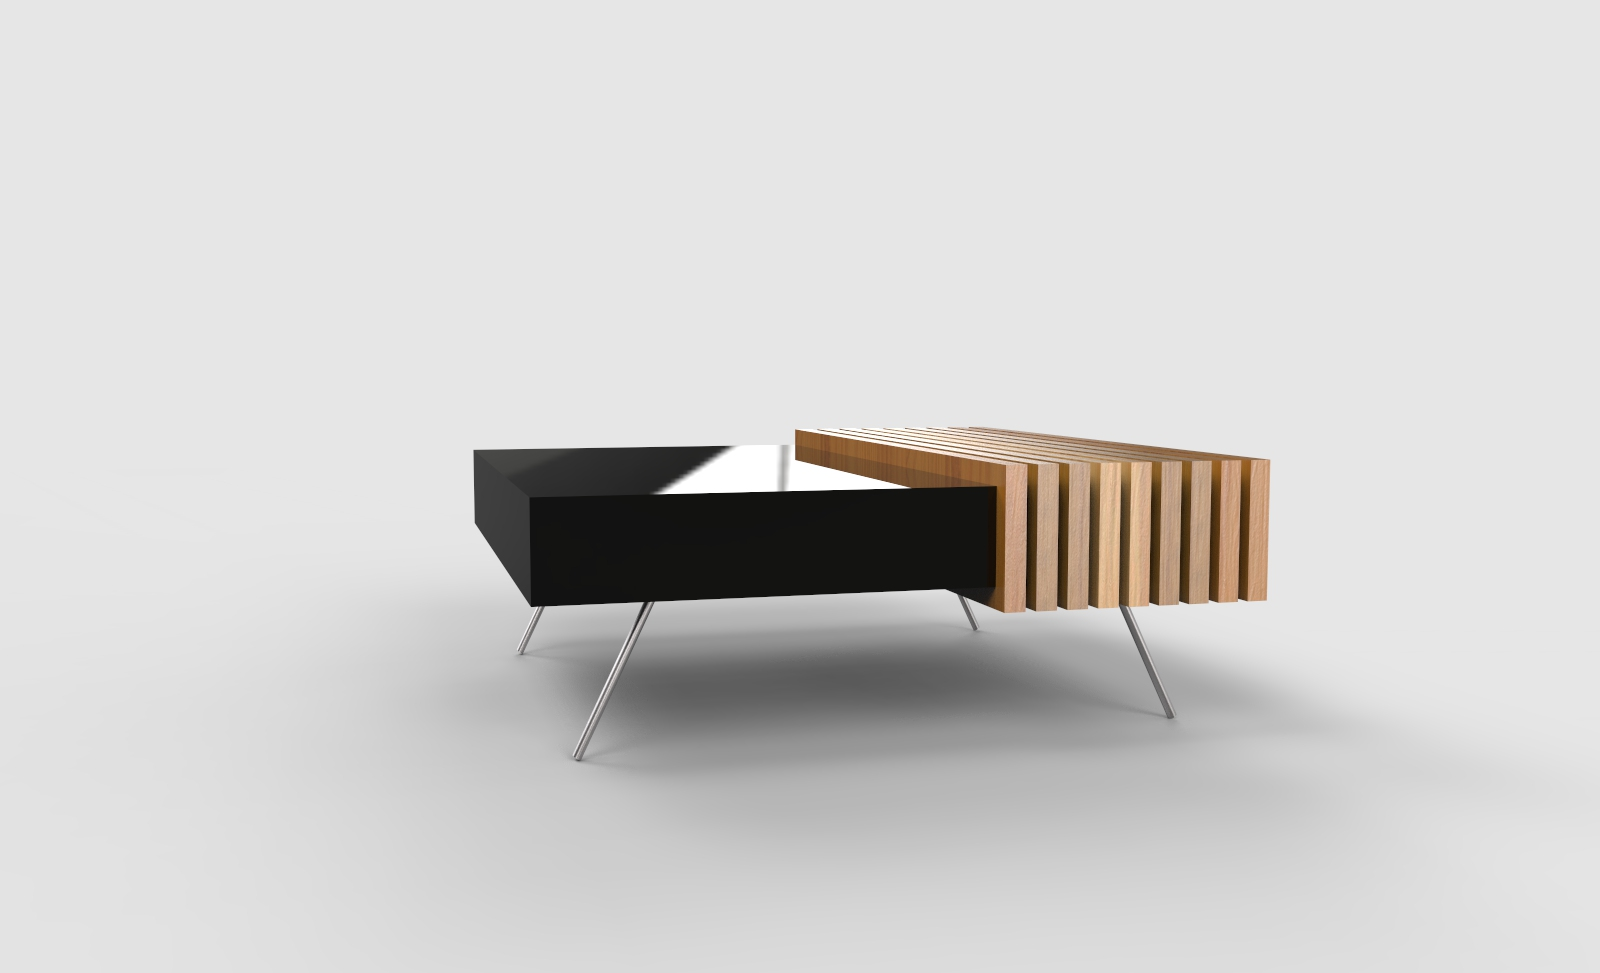 drab-furniture-set-pawlowska-design-d3